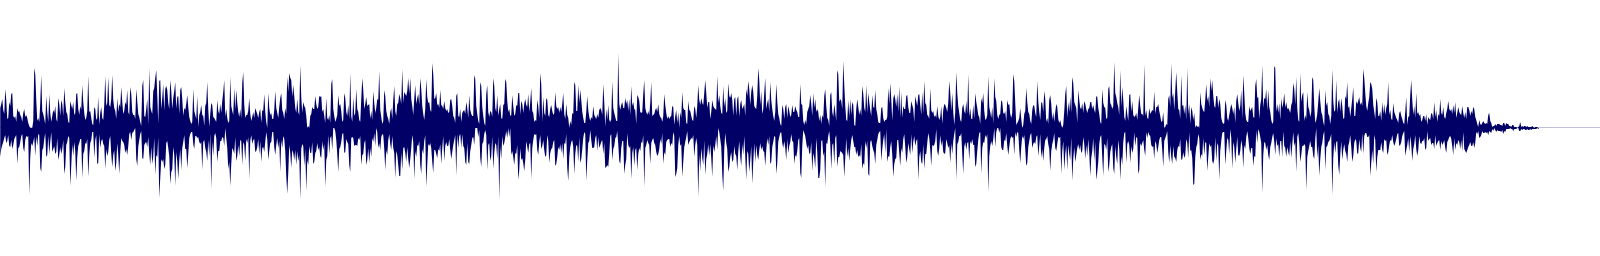 waveform of track #96699